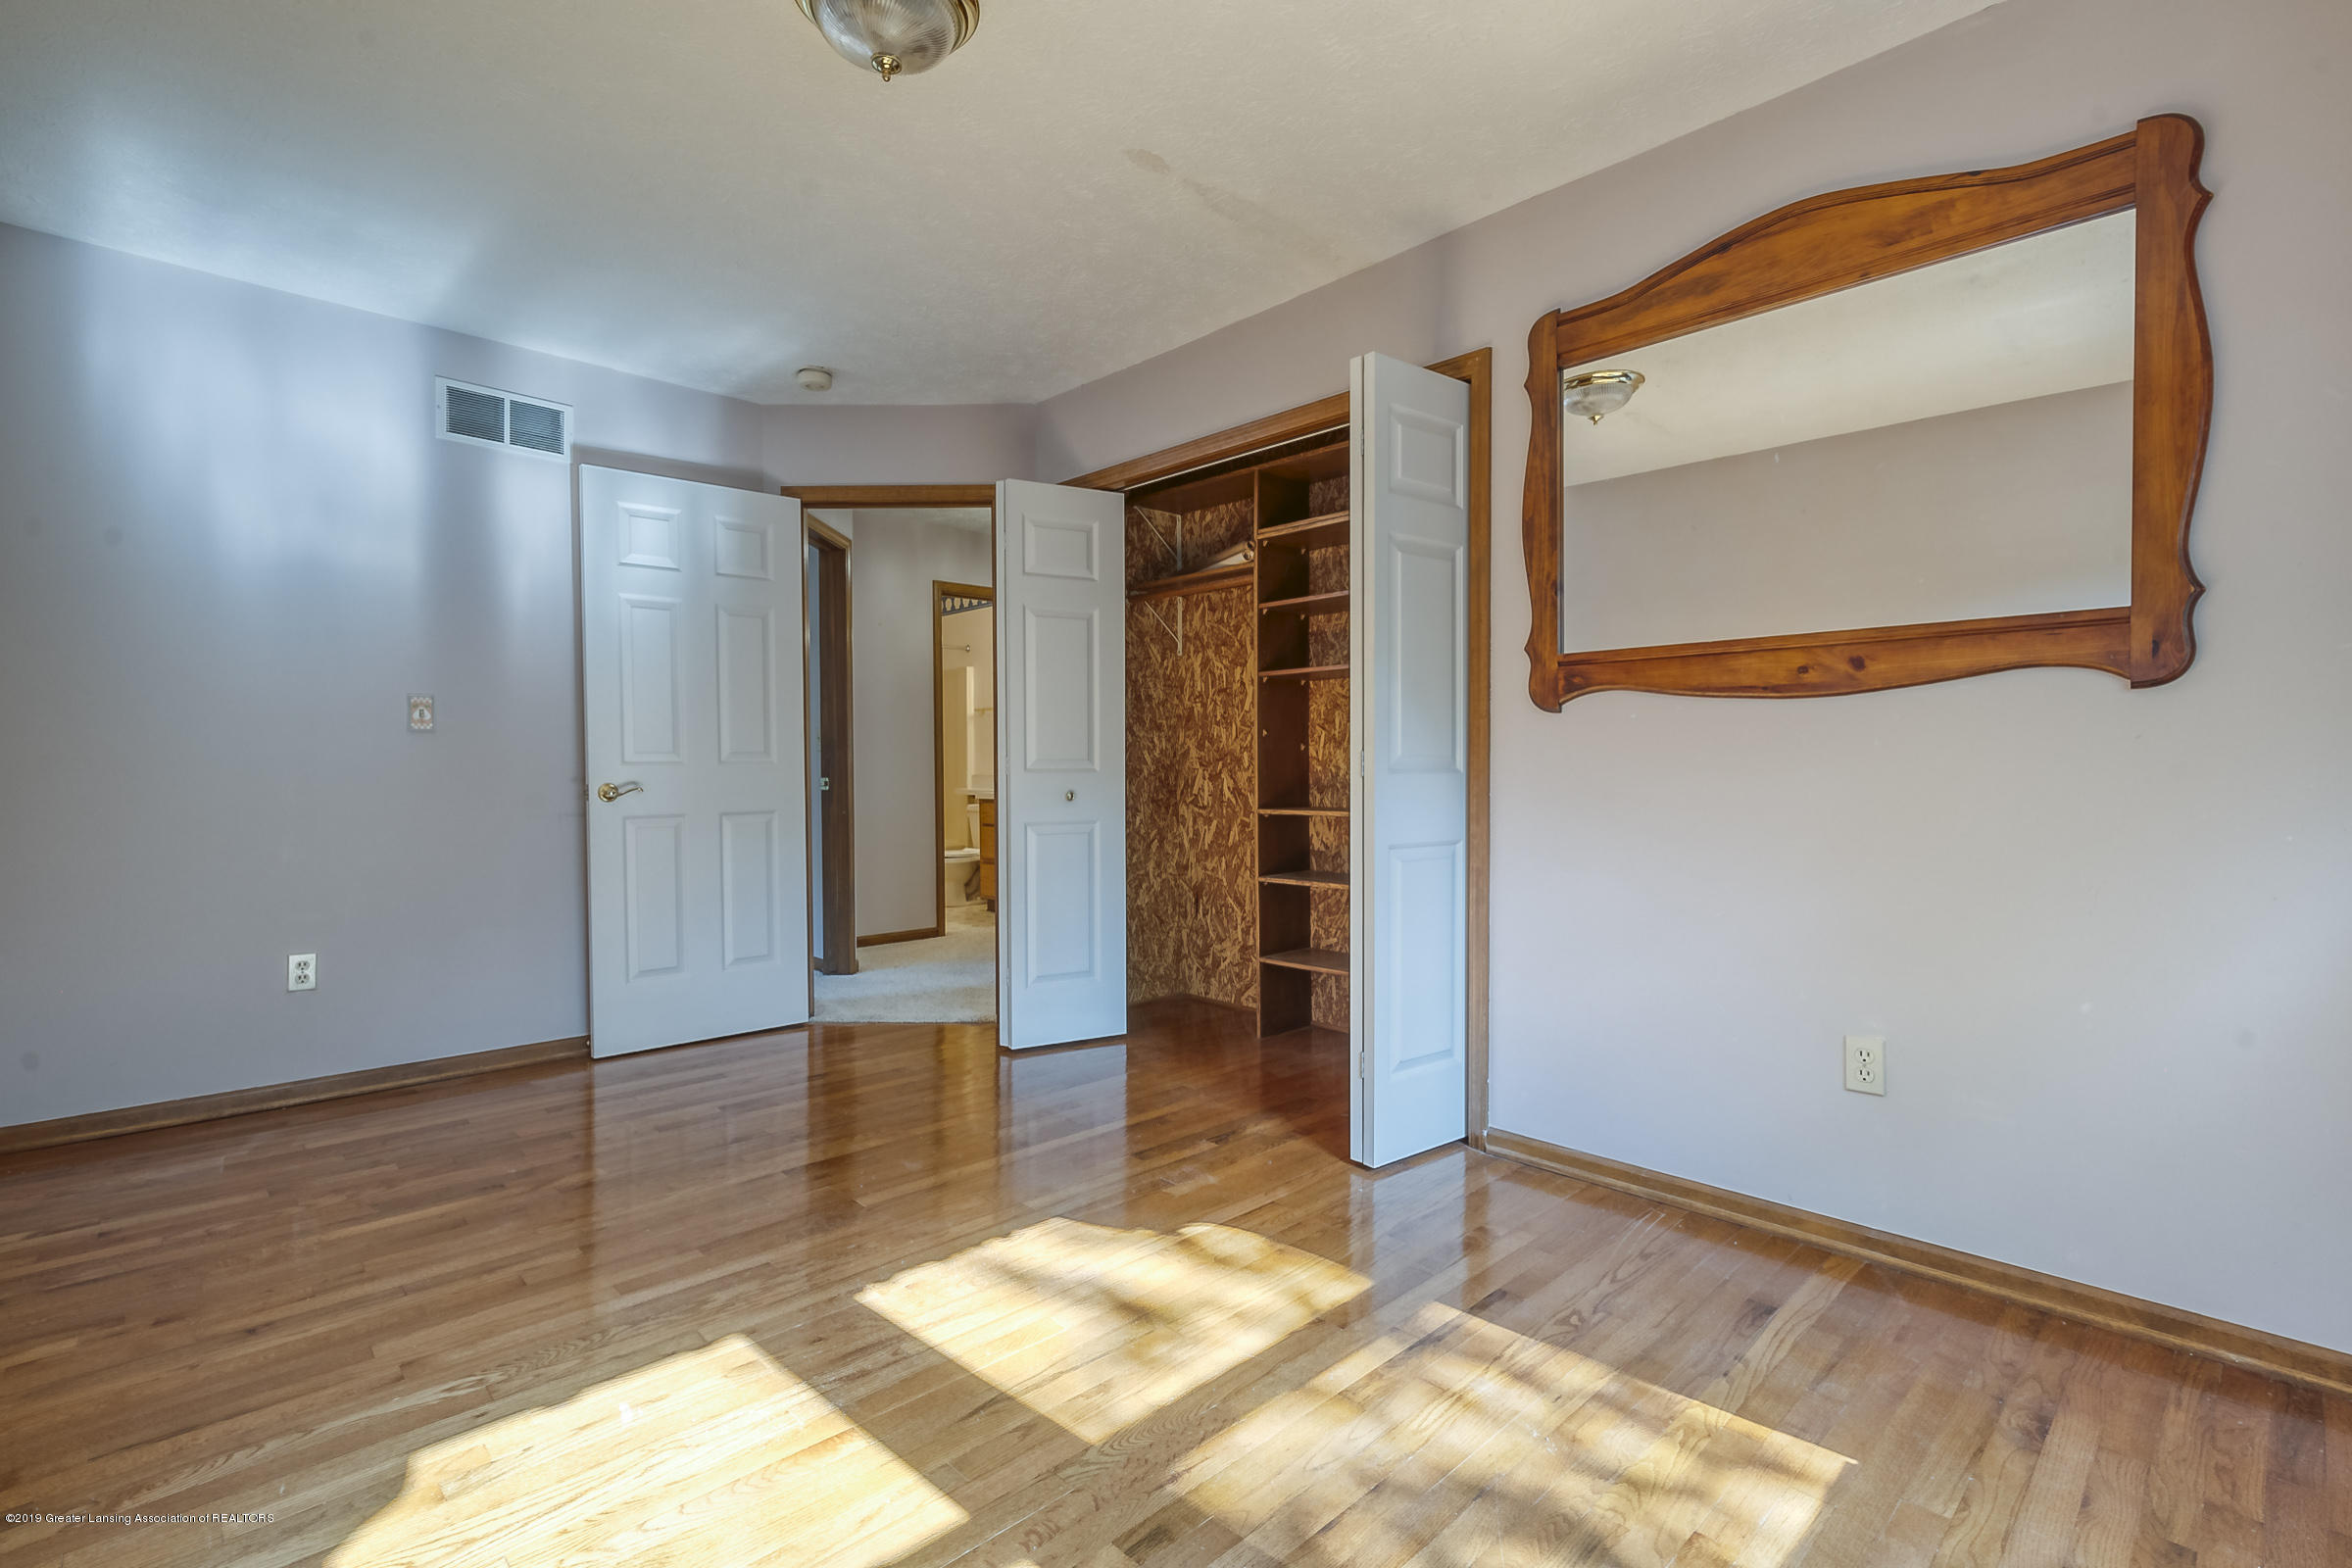 2343 Chisholm Ct - BEDROOM - 22